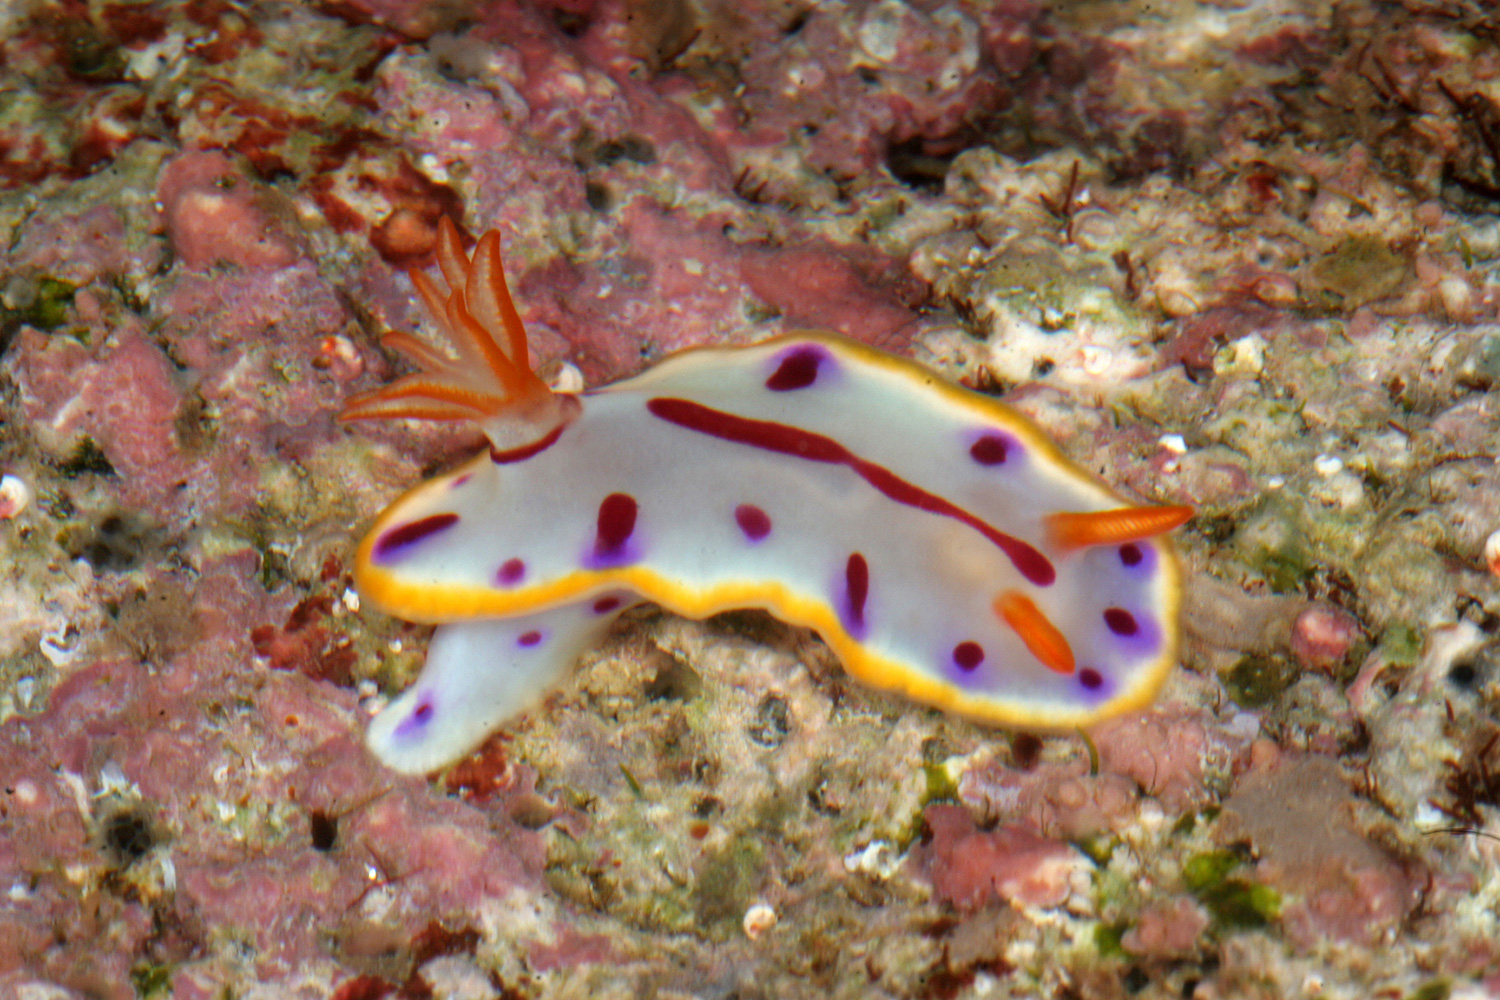 Jewel of the sea: One of the new species of Hypselodoris nudibranchs found in Mainit, Batangas by Dr. Gosliner. (Photo by Terrence Gosliner, California Academy of Sciences)